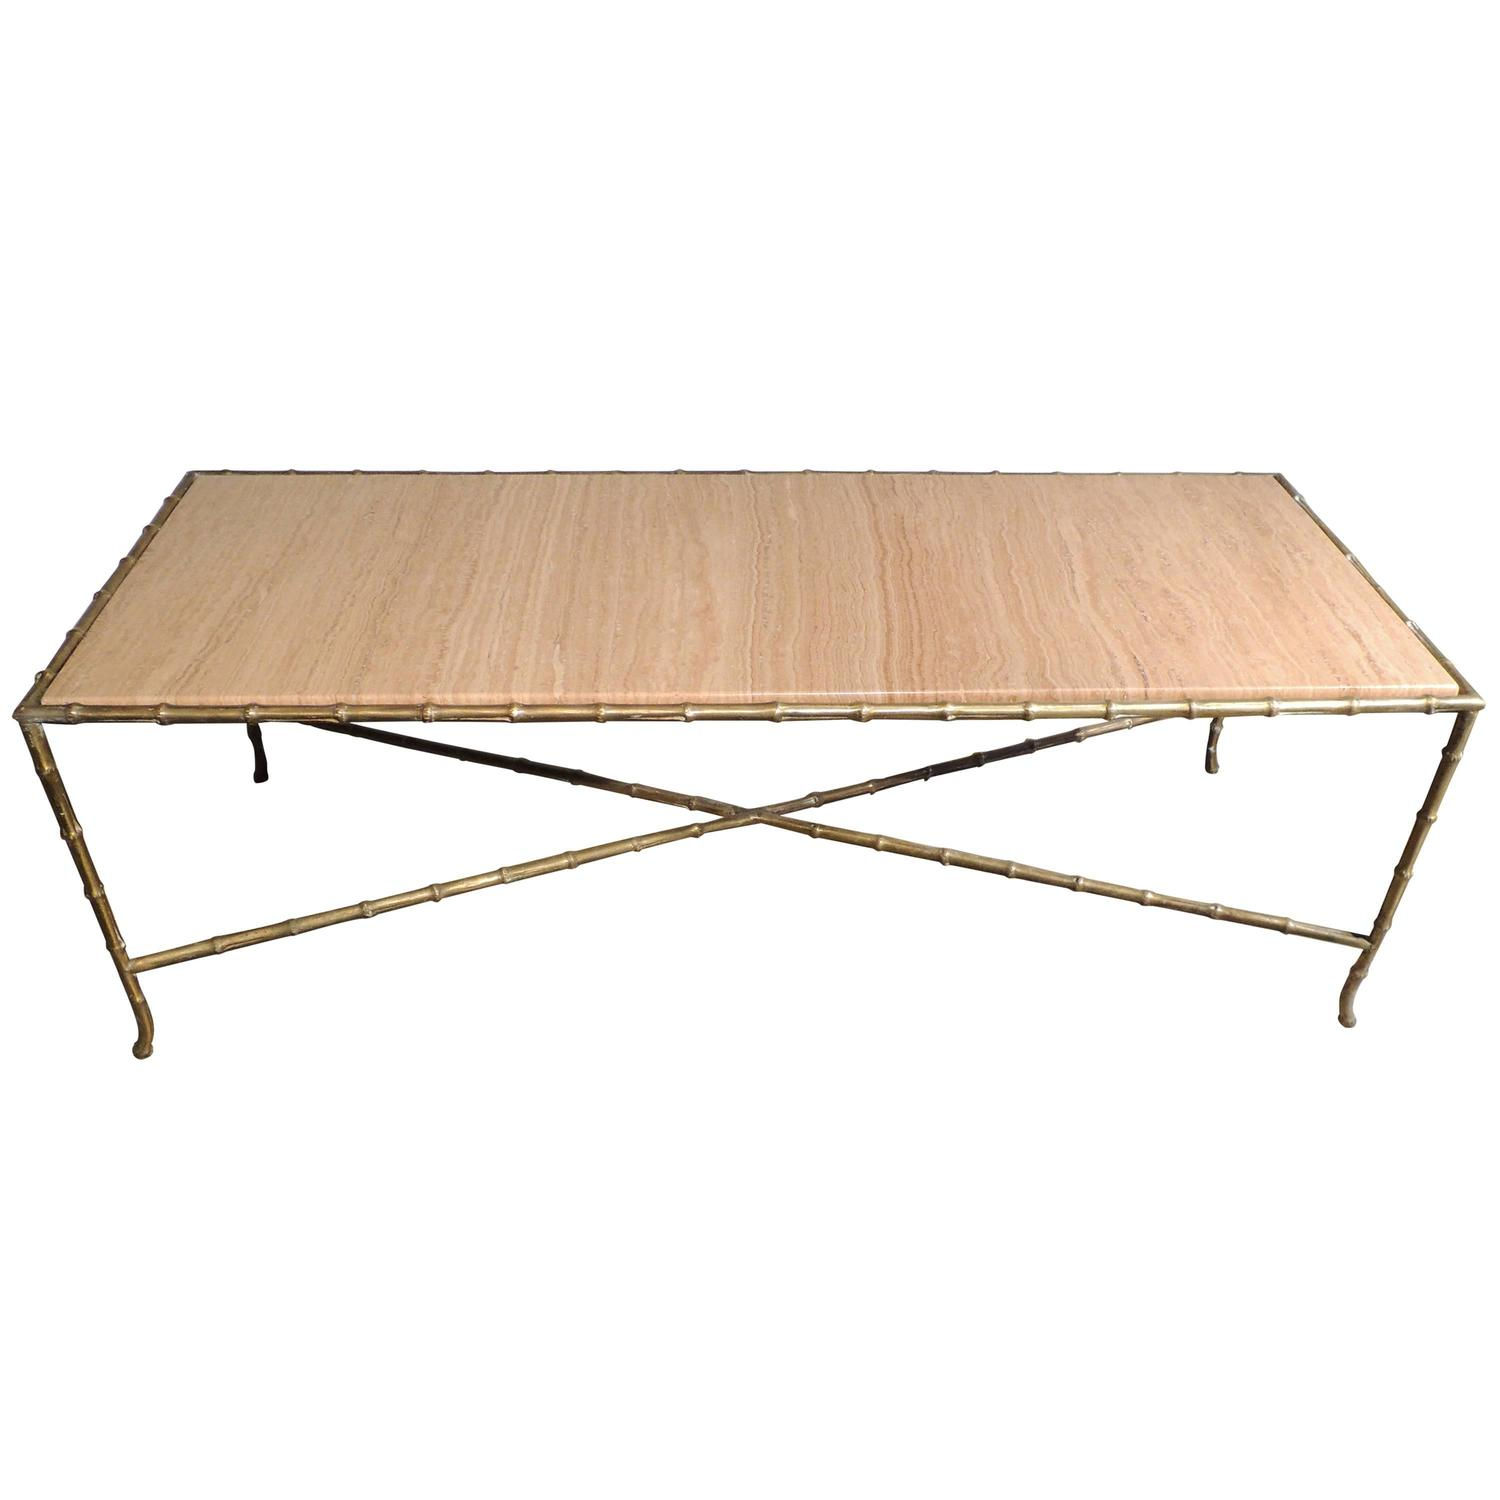 Brass Faux Bamboo Coffee Table: Brass Maison Baguès Faux Bamboo Coffee Table At 1stdibs